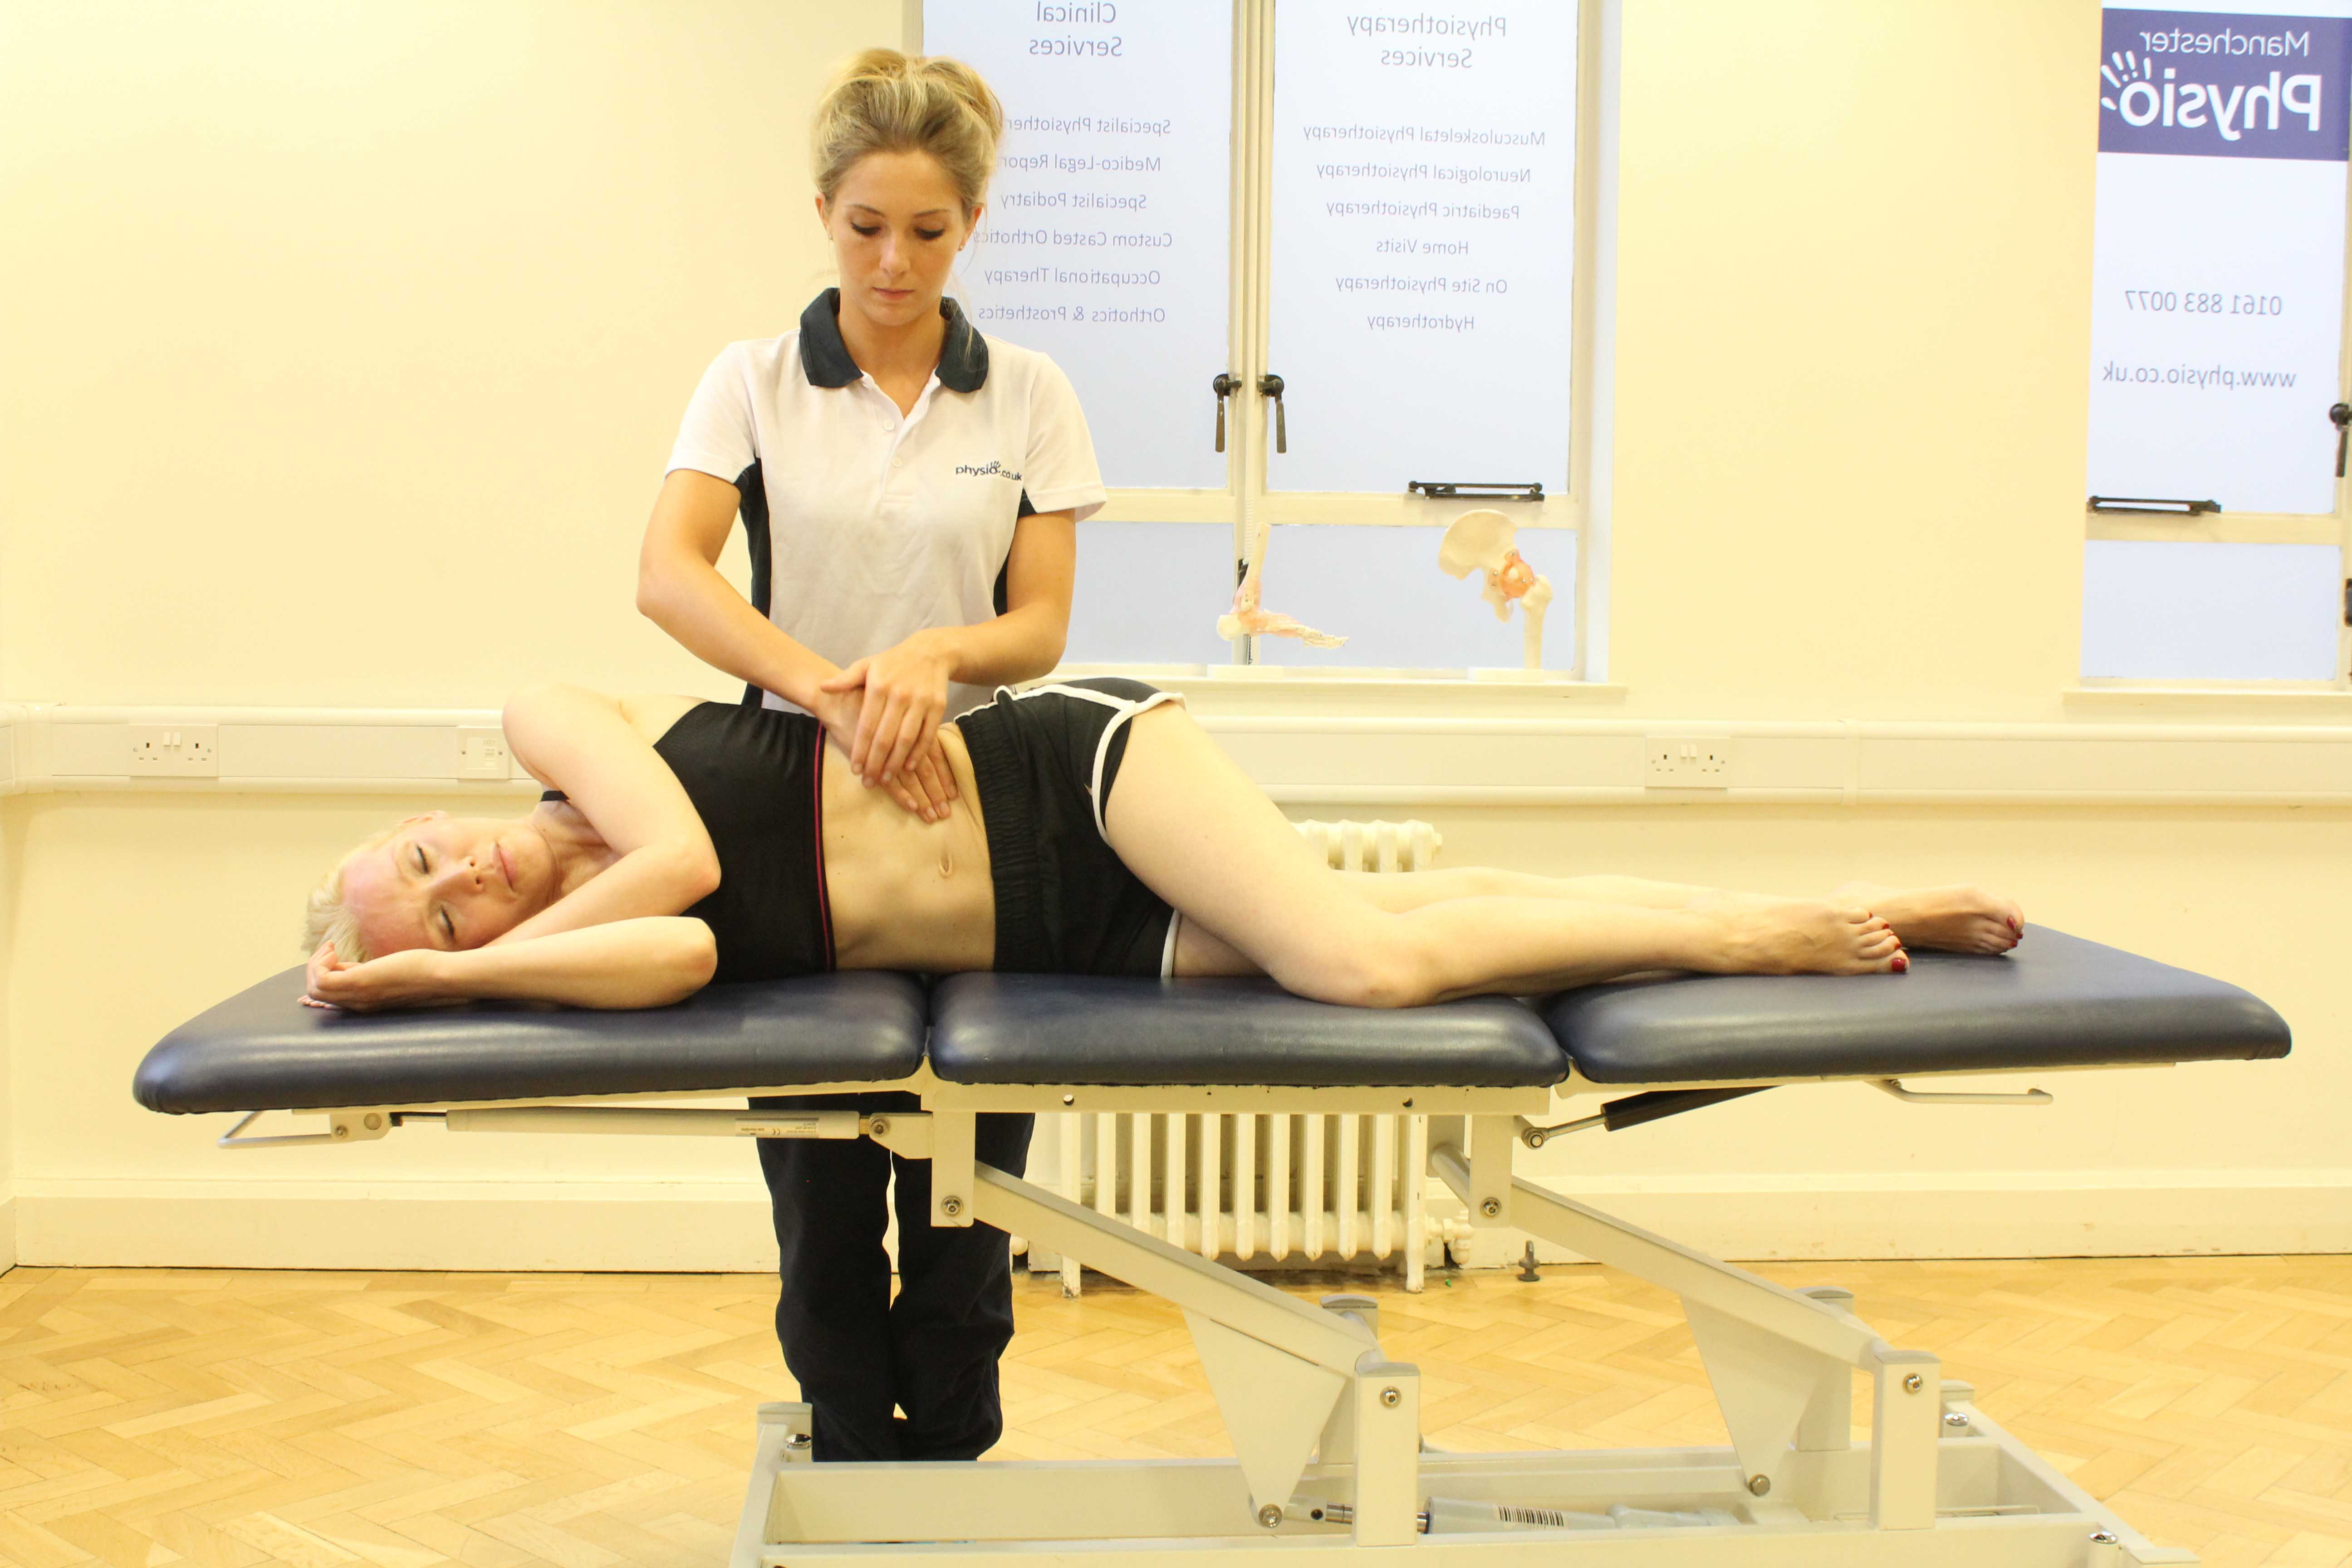 Soft tissue massage of the abdominal muscles by a specialist massage therapist